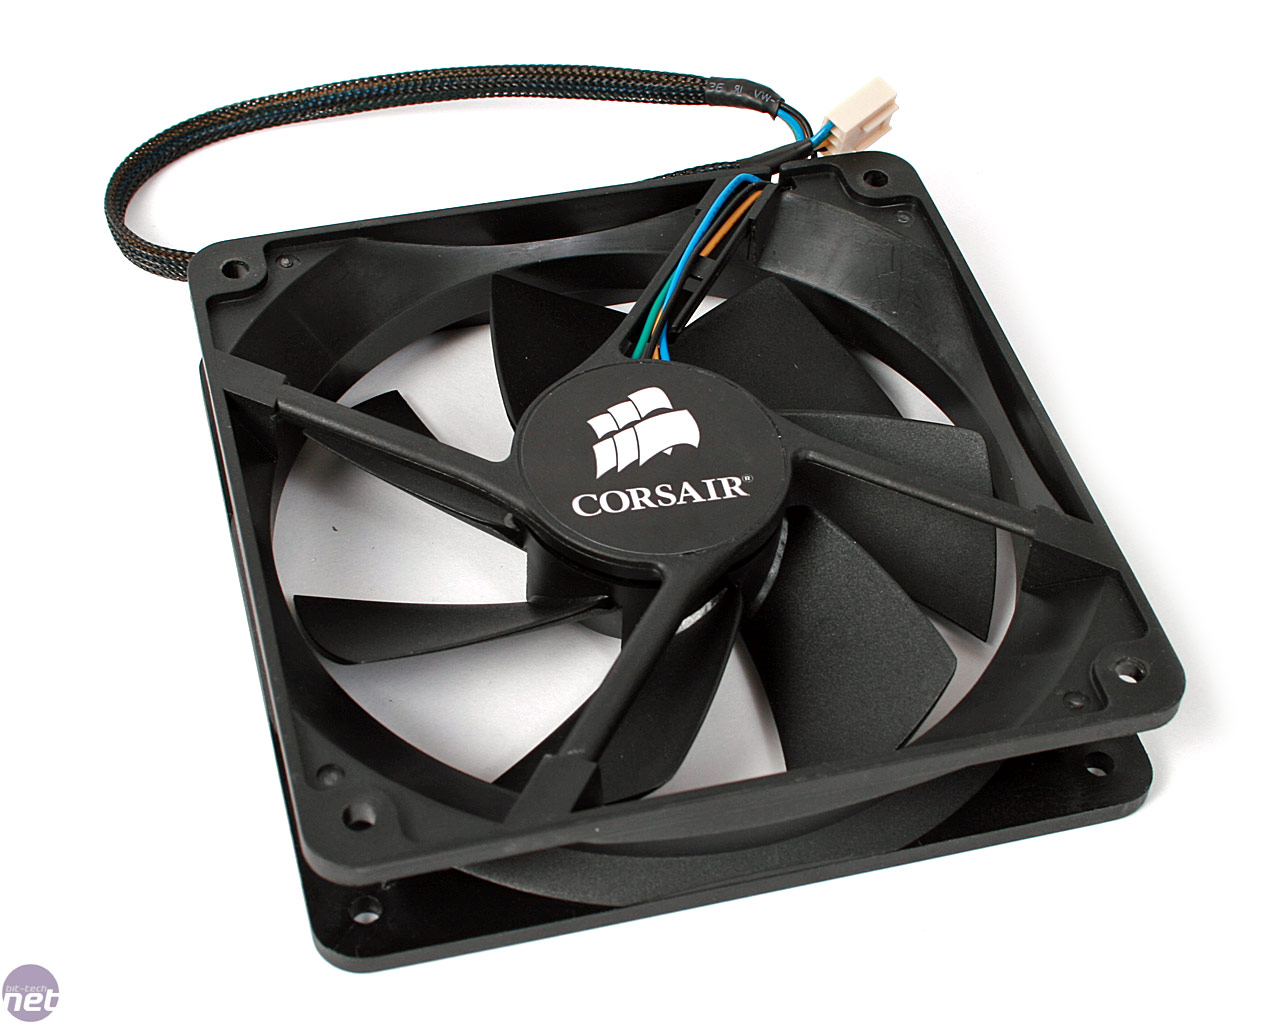 H50 Cpu Cooler Install Corsair Hydro H50 Cpu Cooler